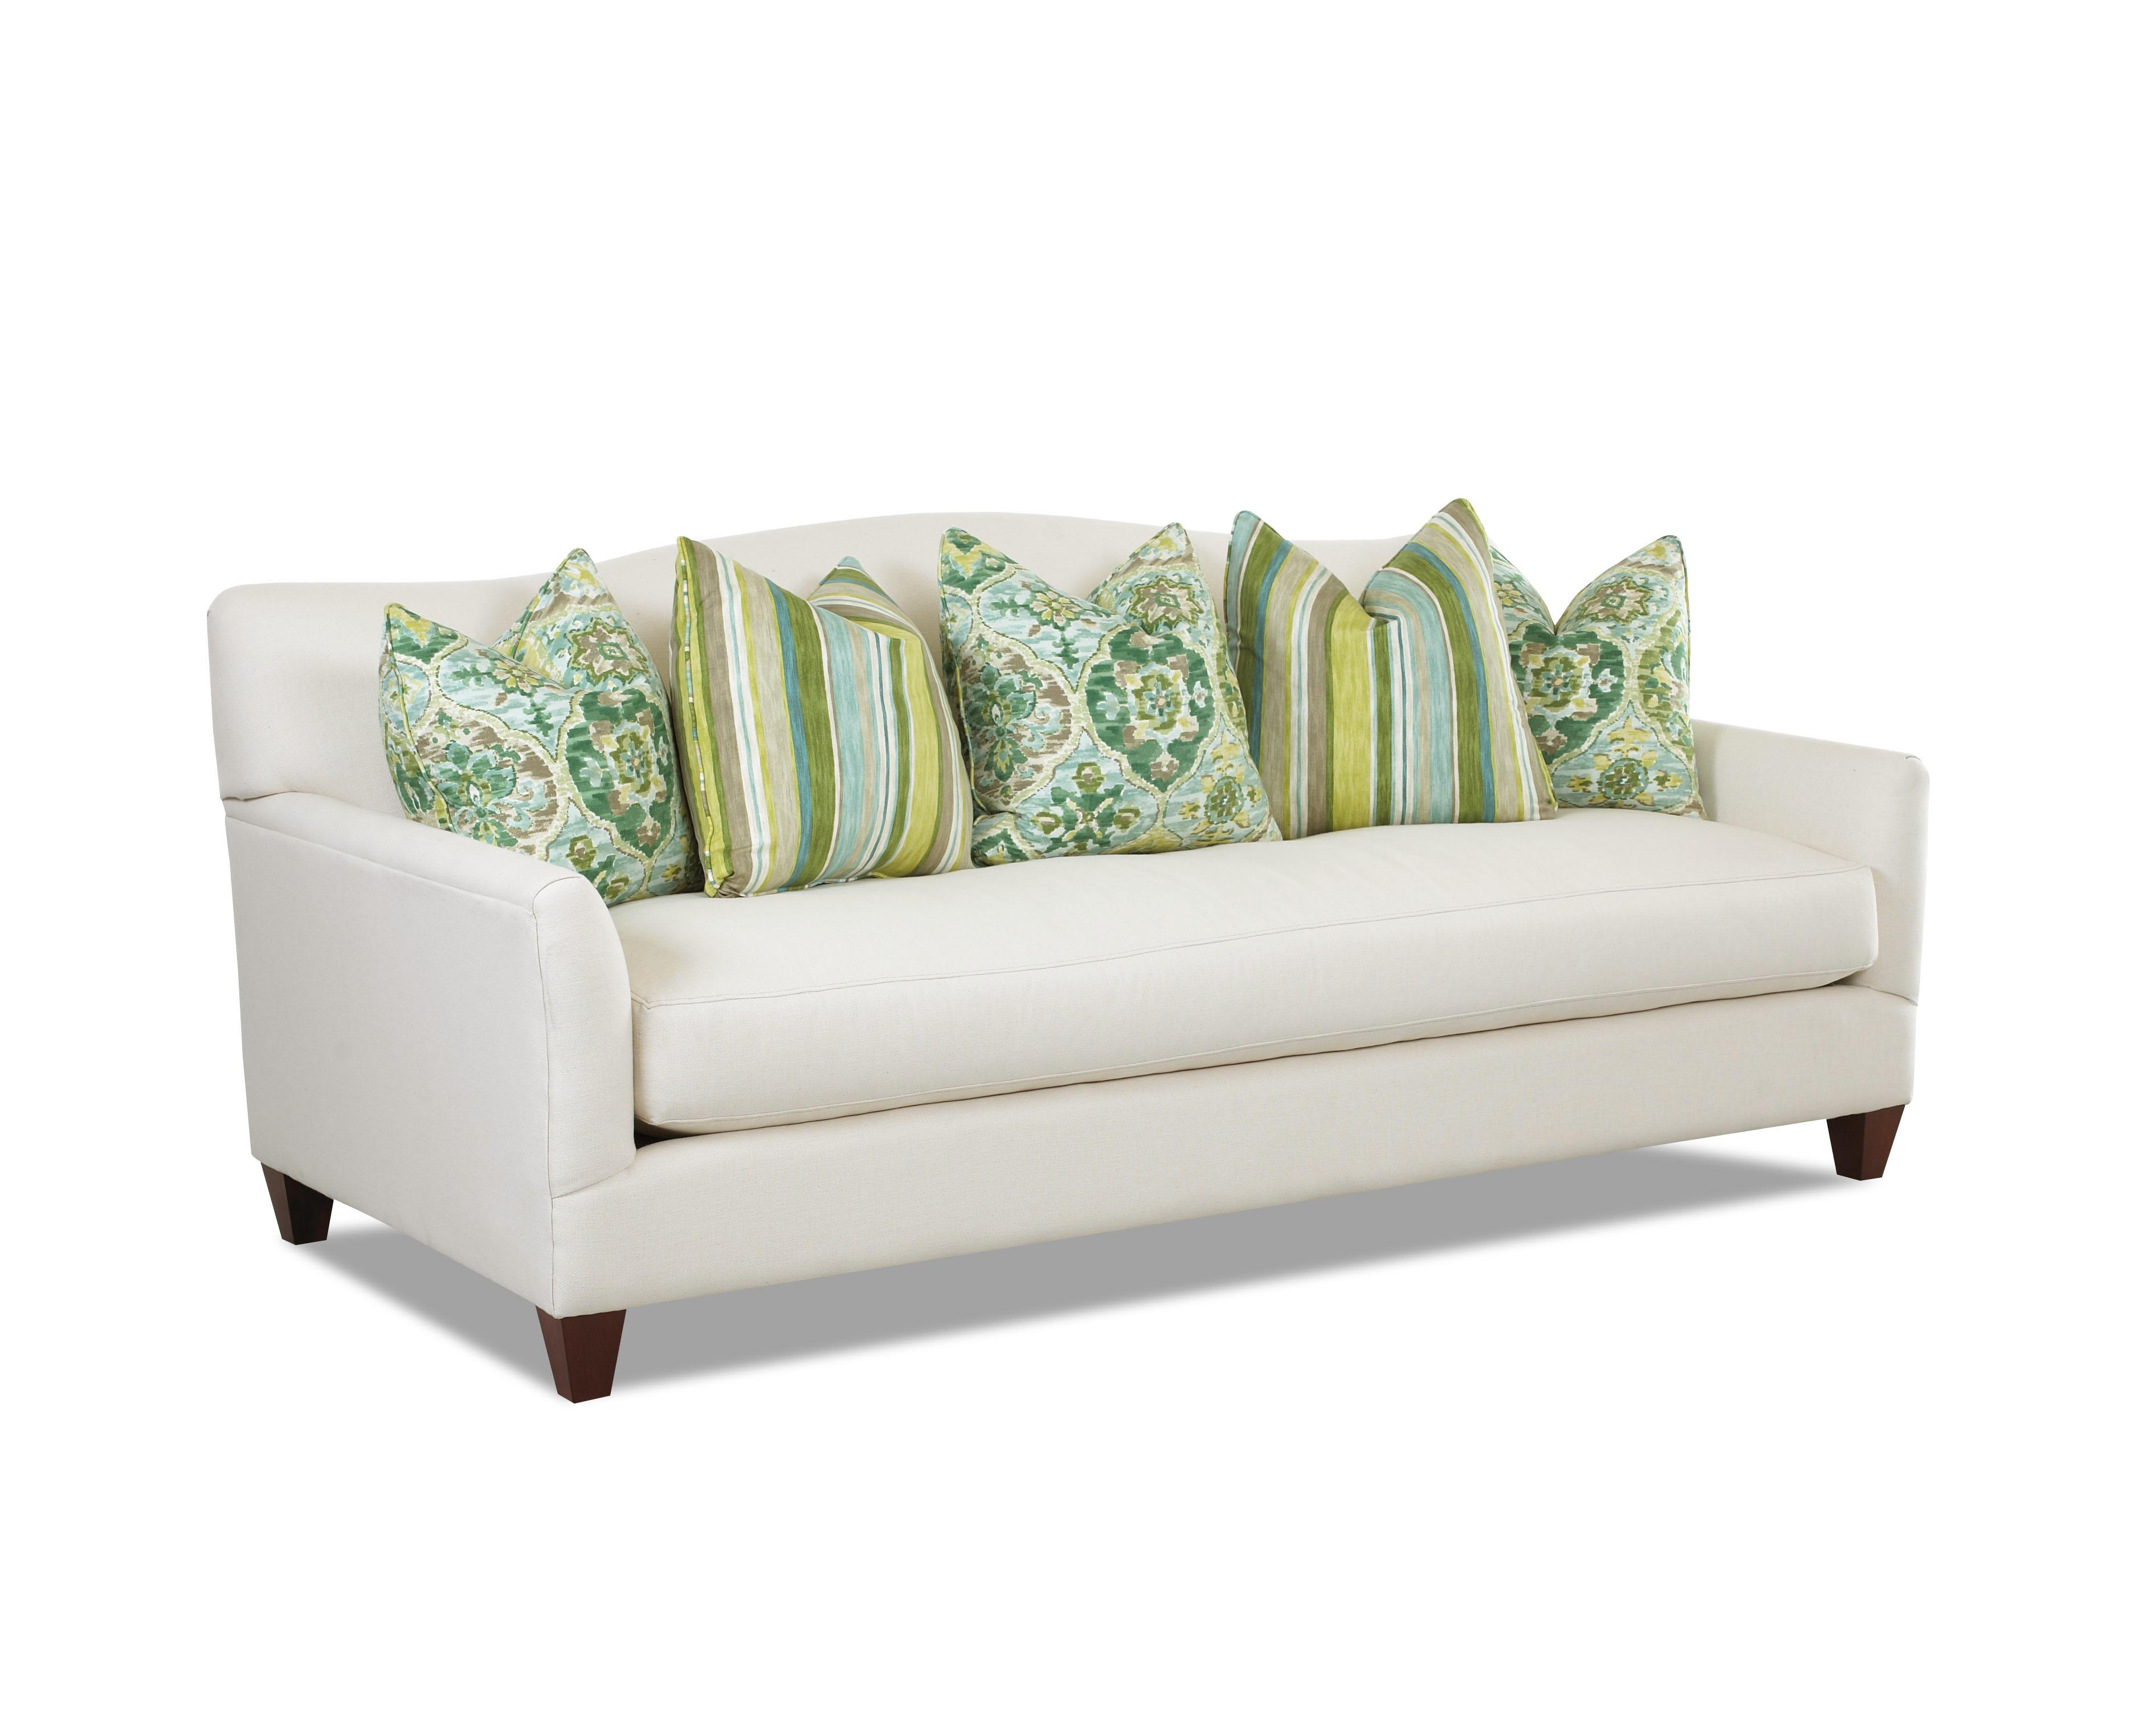 Contemporary Stationary Sofa with Bench Seat Cushion and  : leighton20313d3130020s b0 from www.wolffurniture.com size 3784 x 3027 jpeg 485kB